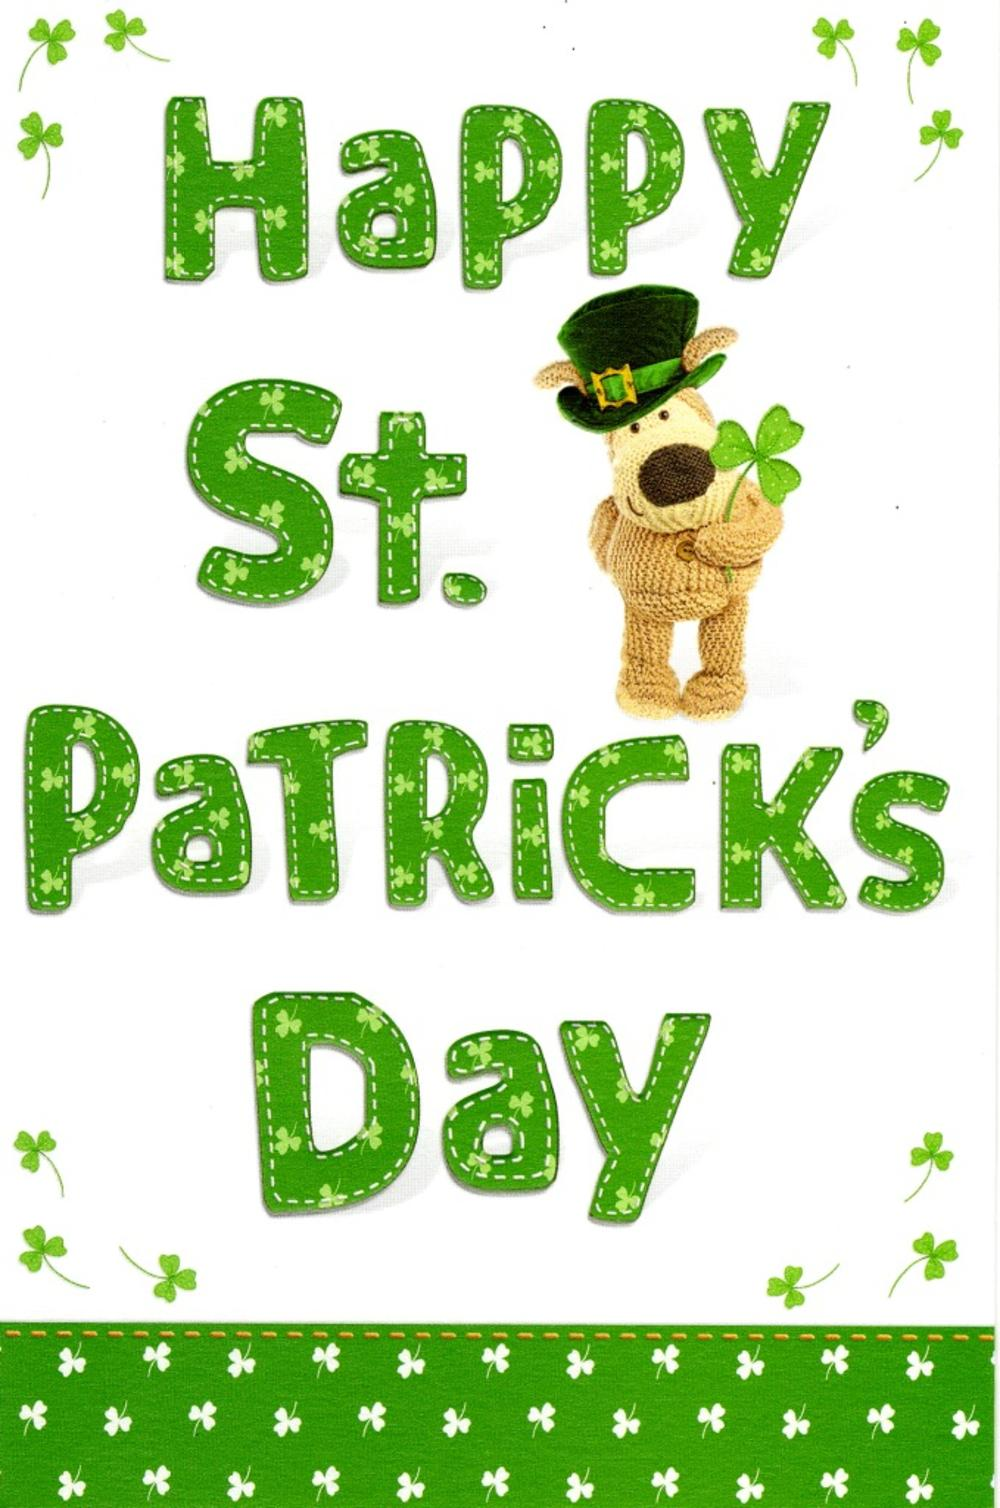 Boofle happy st patricks day greeting card cards love kates boofle happy st patricks day greeting card m4hsunfo